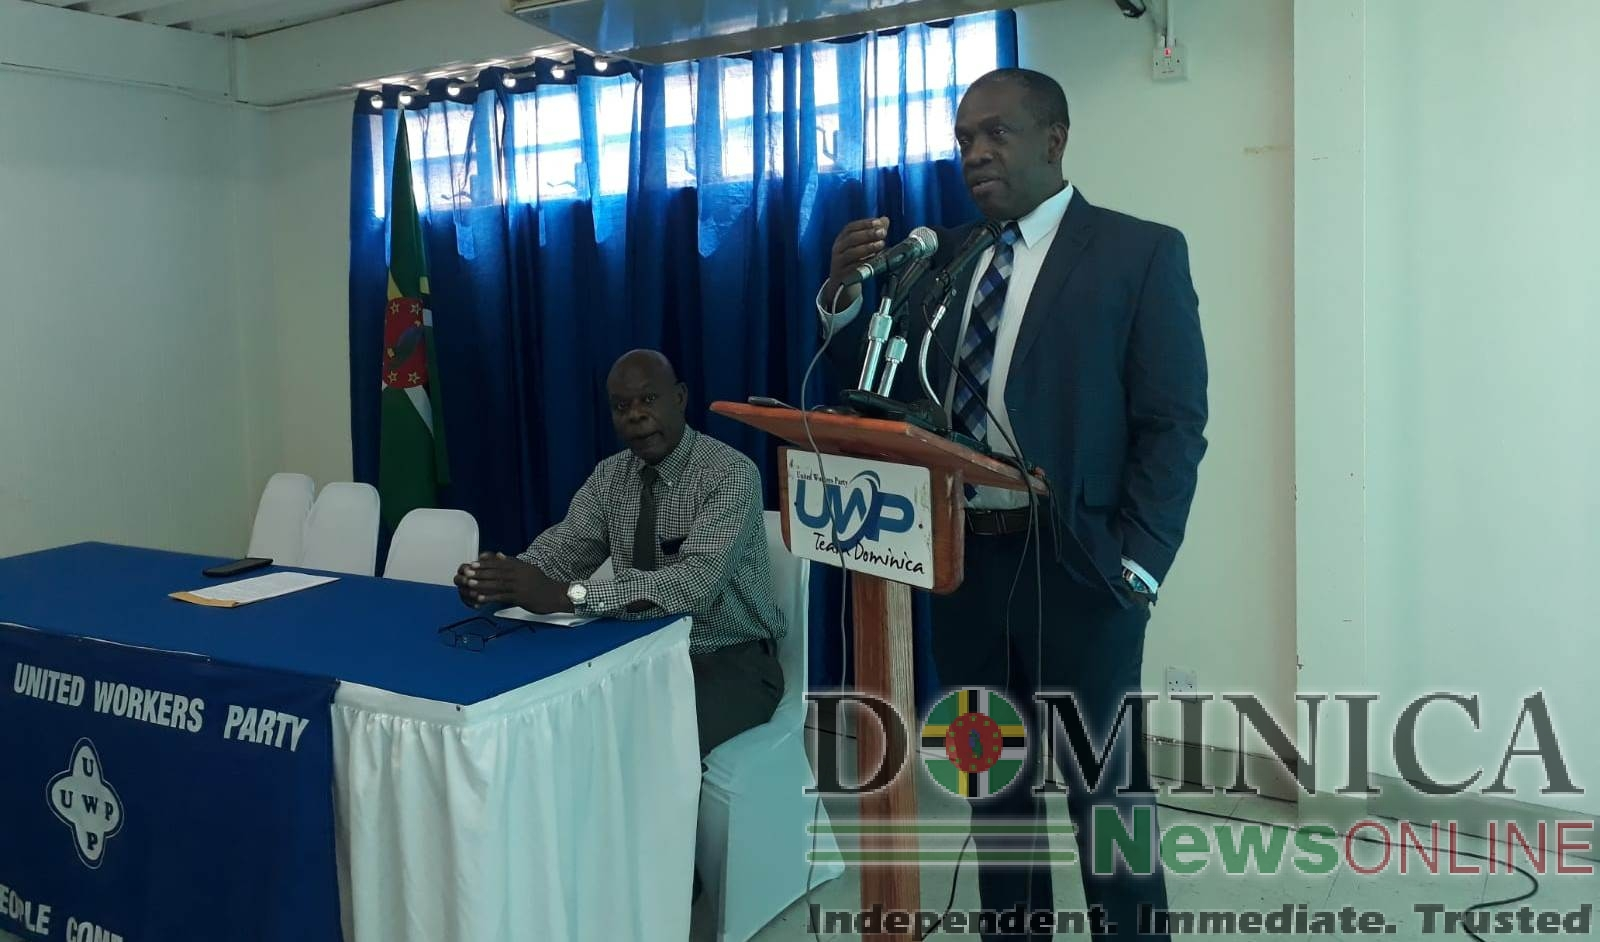 UWP will continue NEP but differently, says Linton